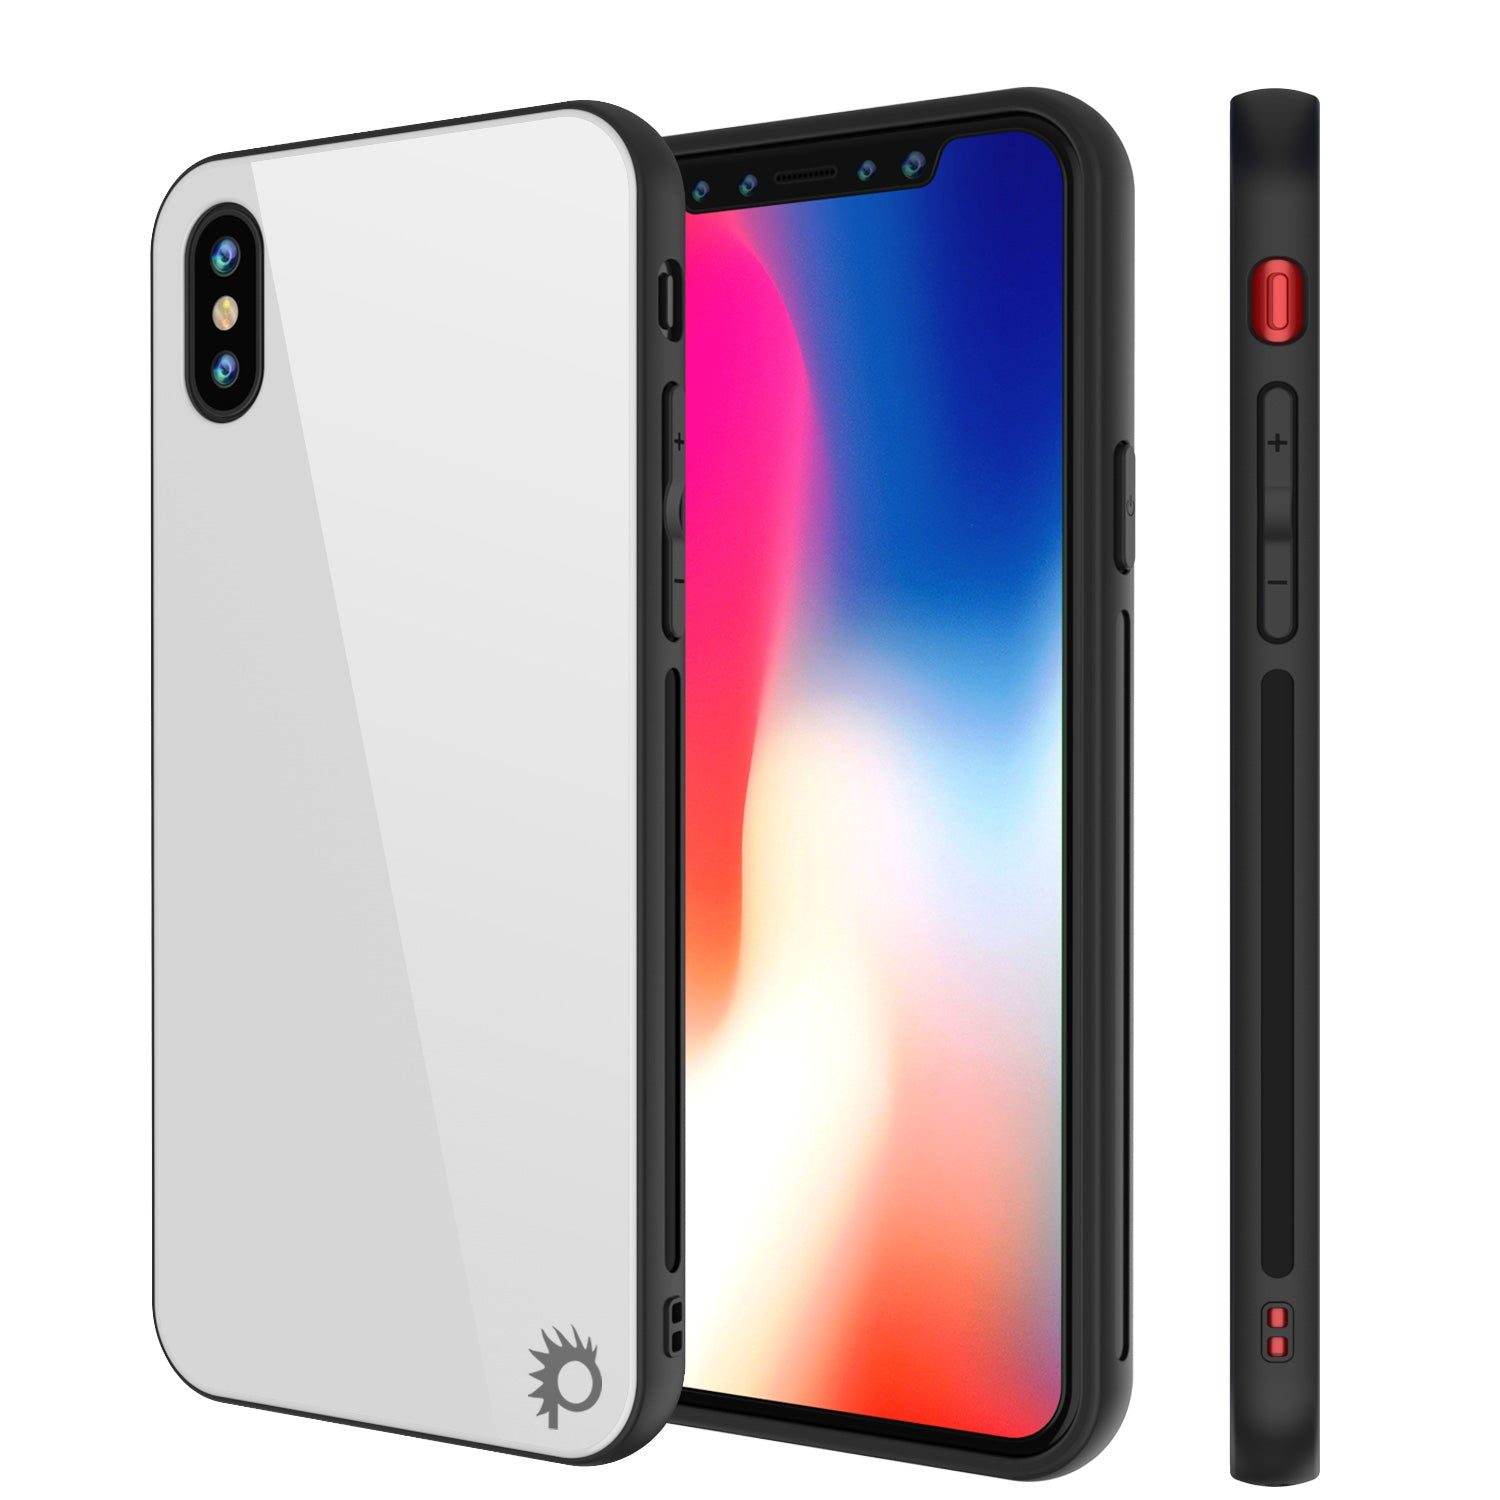 buy popular 6a973 747a8 iPhone X Case, Punkcase GlassShield Ultra Thin Protective 9H Full Body  Tempered Glass Cover White